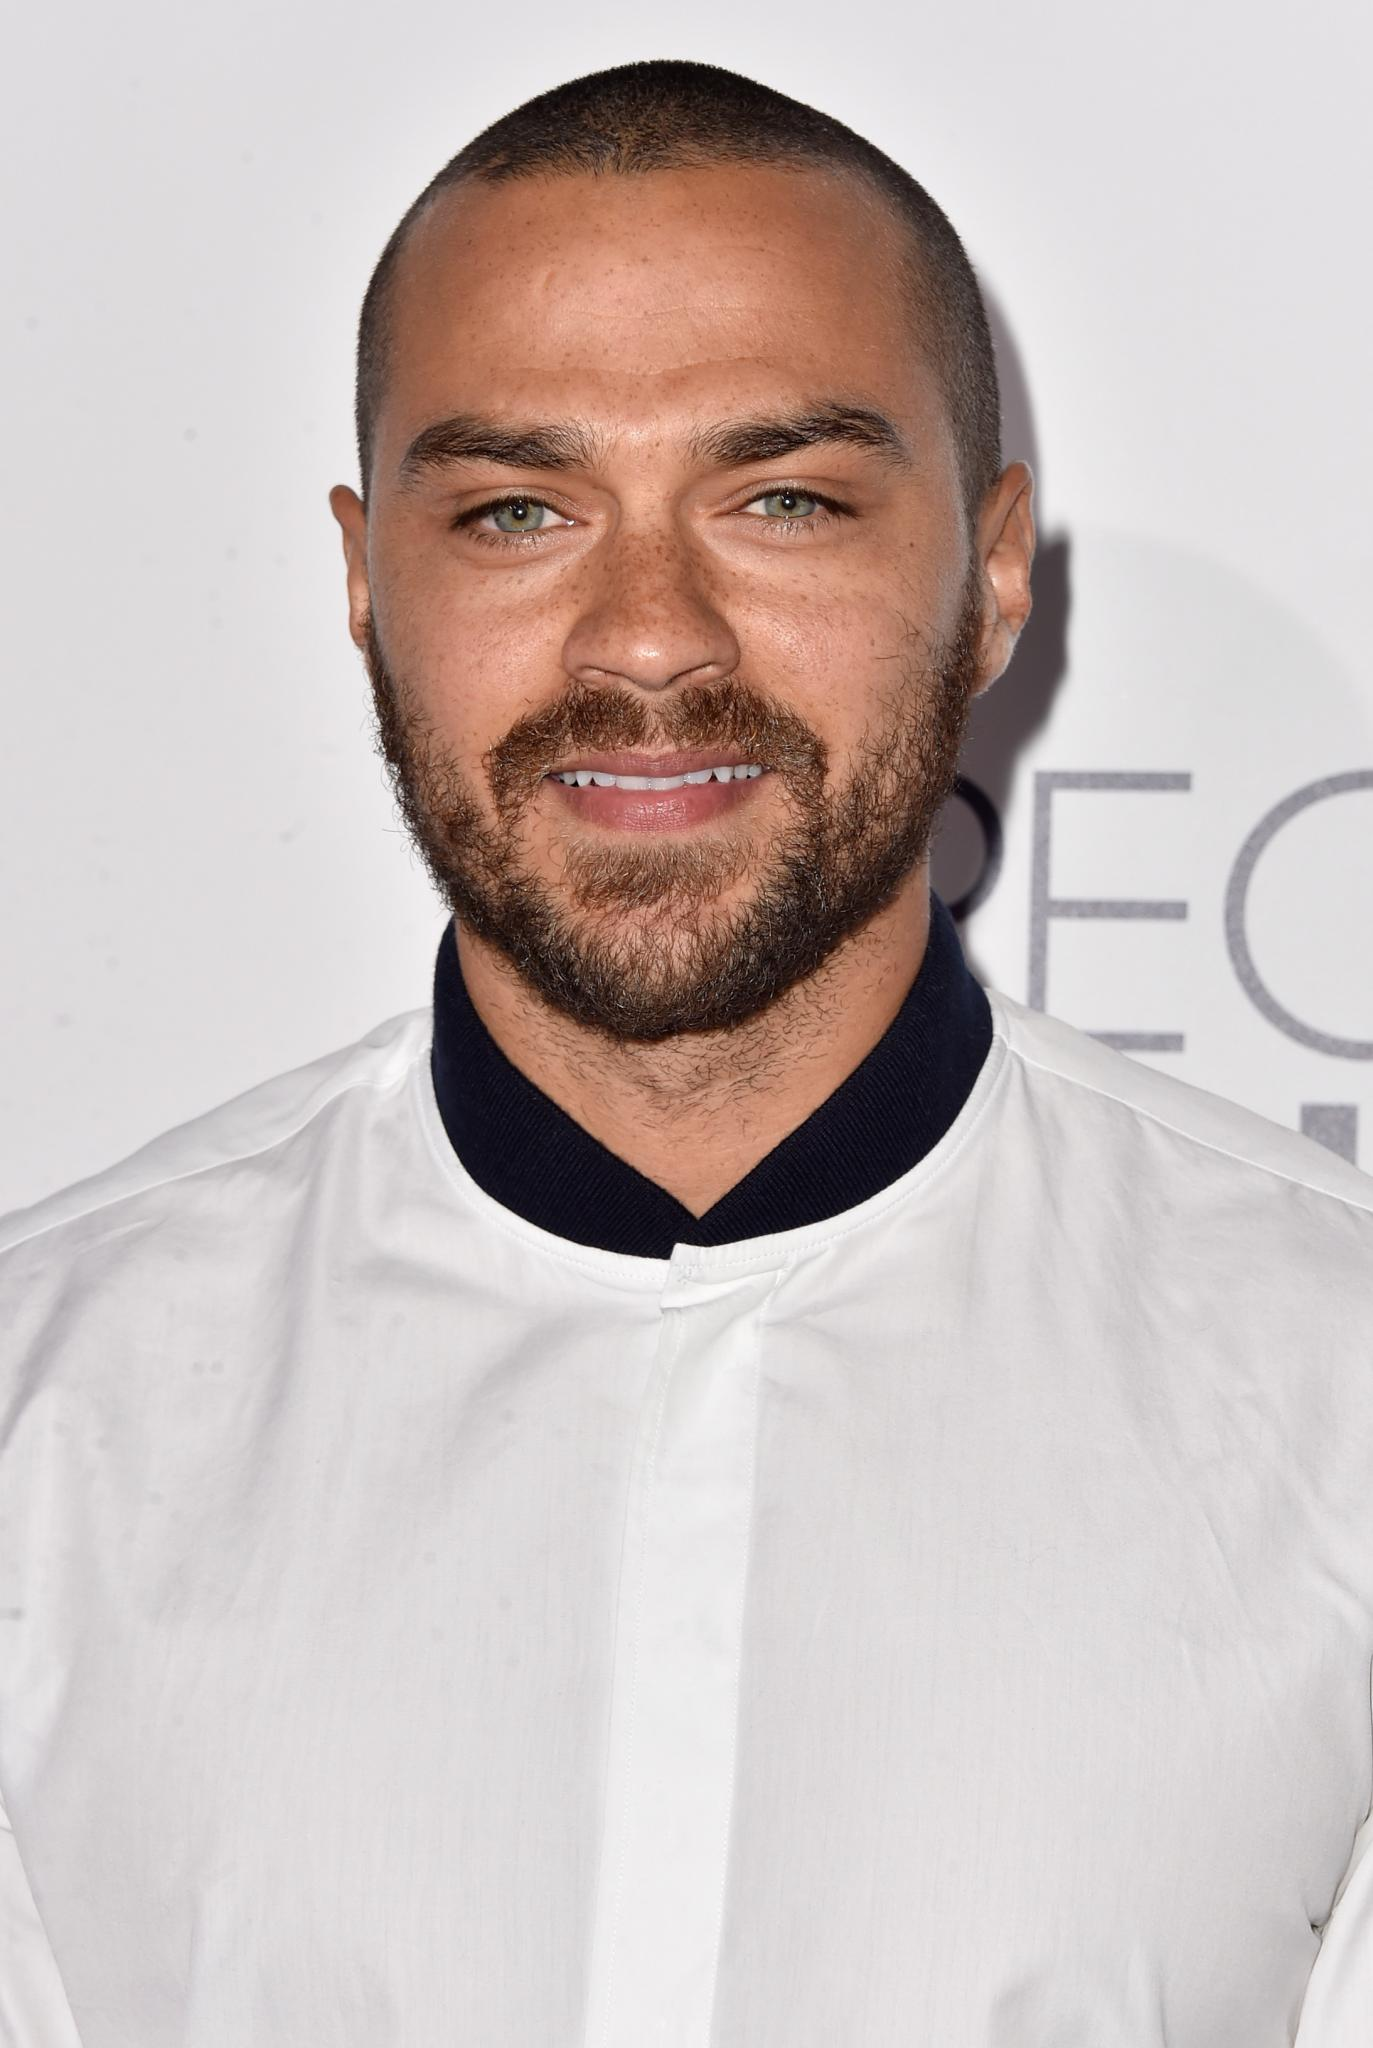 Jesse Williams Chronicles 'Black Lives Matter' Movement in Powerful Documentary